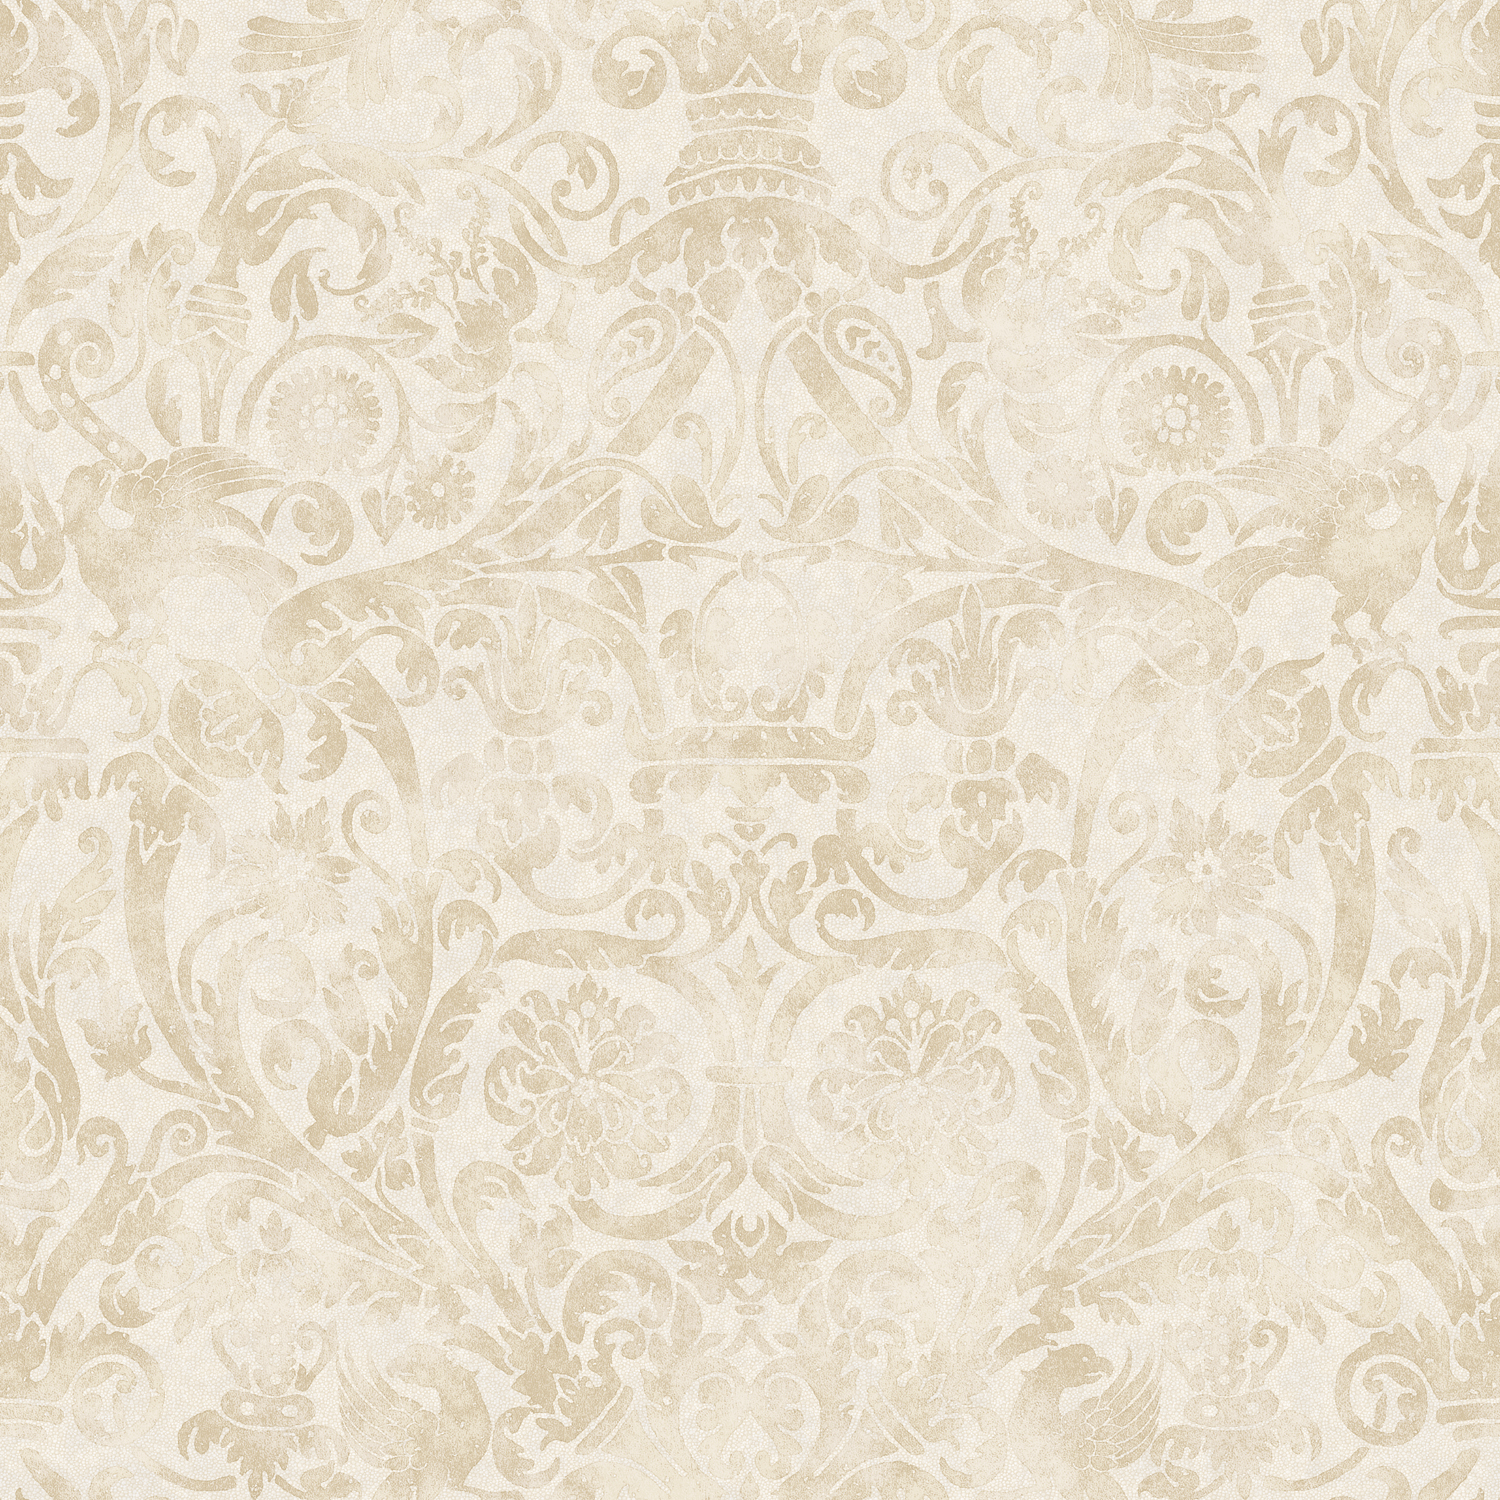 Picture of Bali Brown Damask Wallpaper